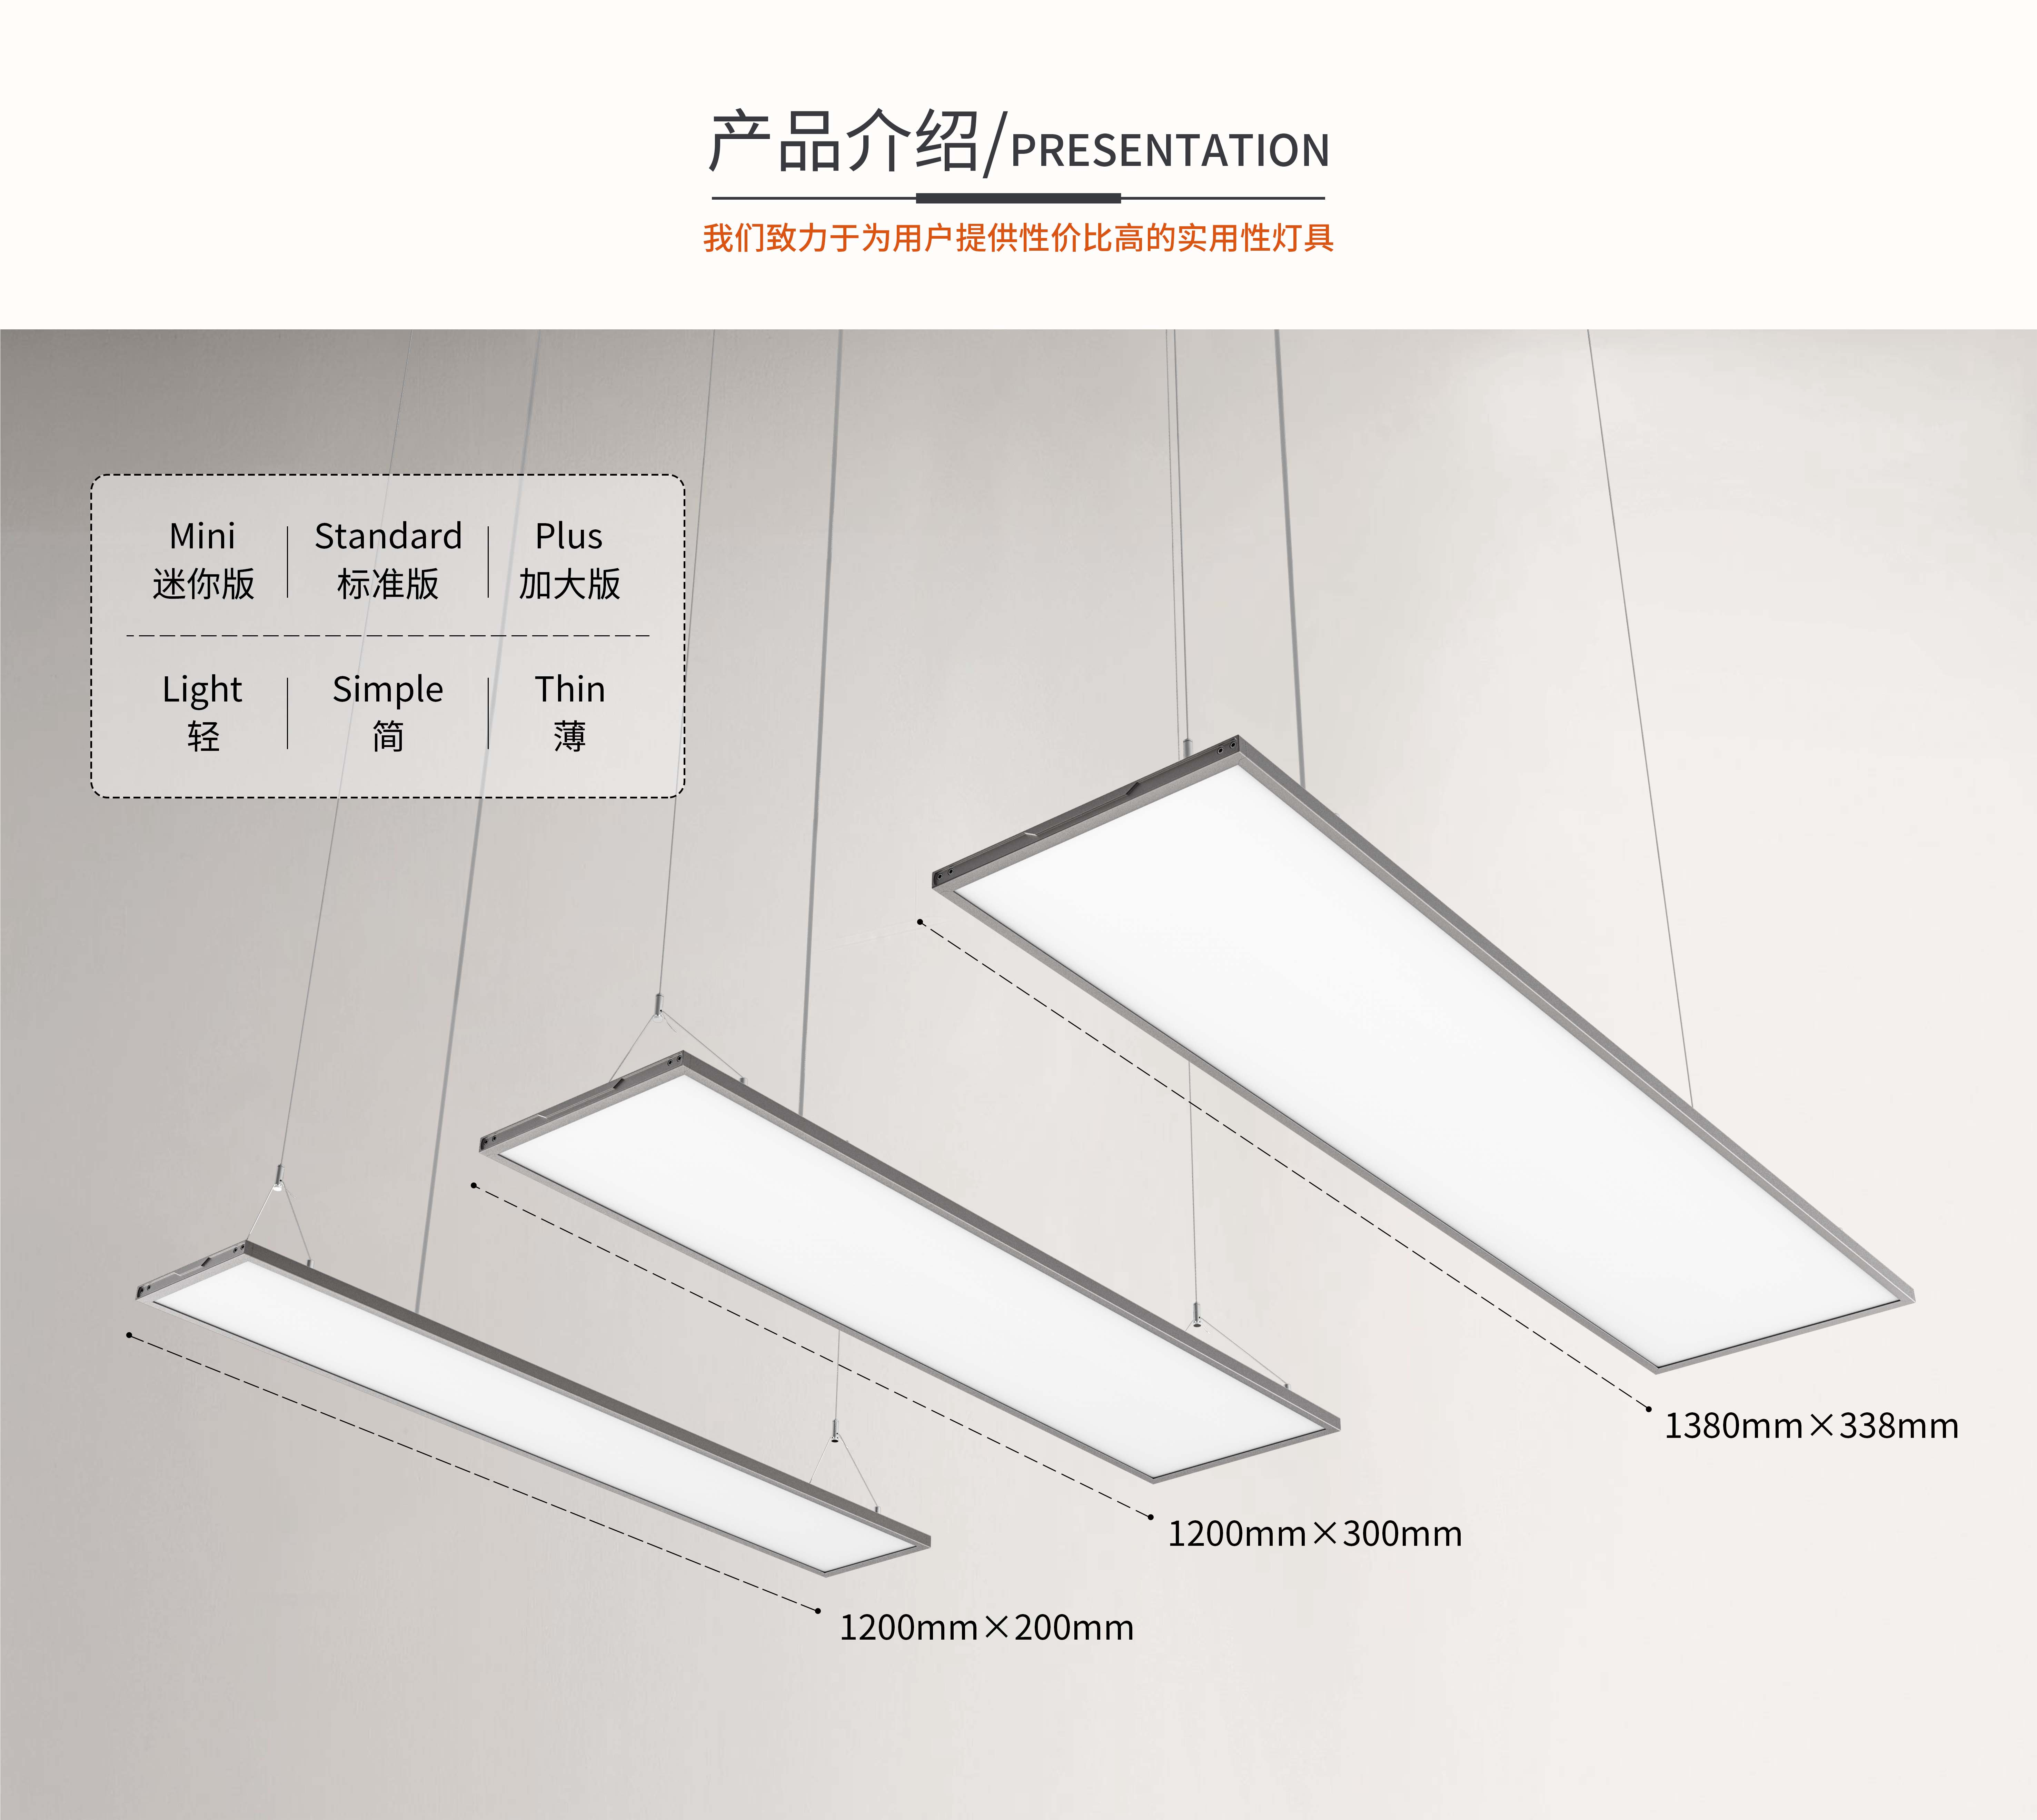 Inlity Flat Lamp Lighting 54w 4000K Square Led Panel Light PLUS Hot Selling led pendant light For the office